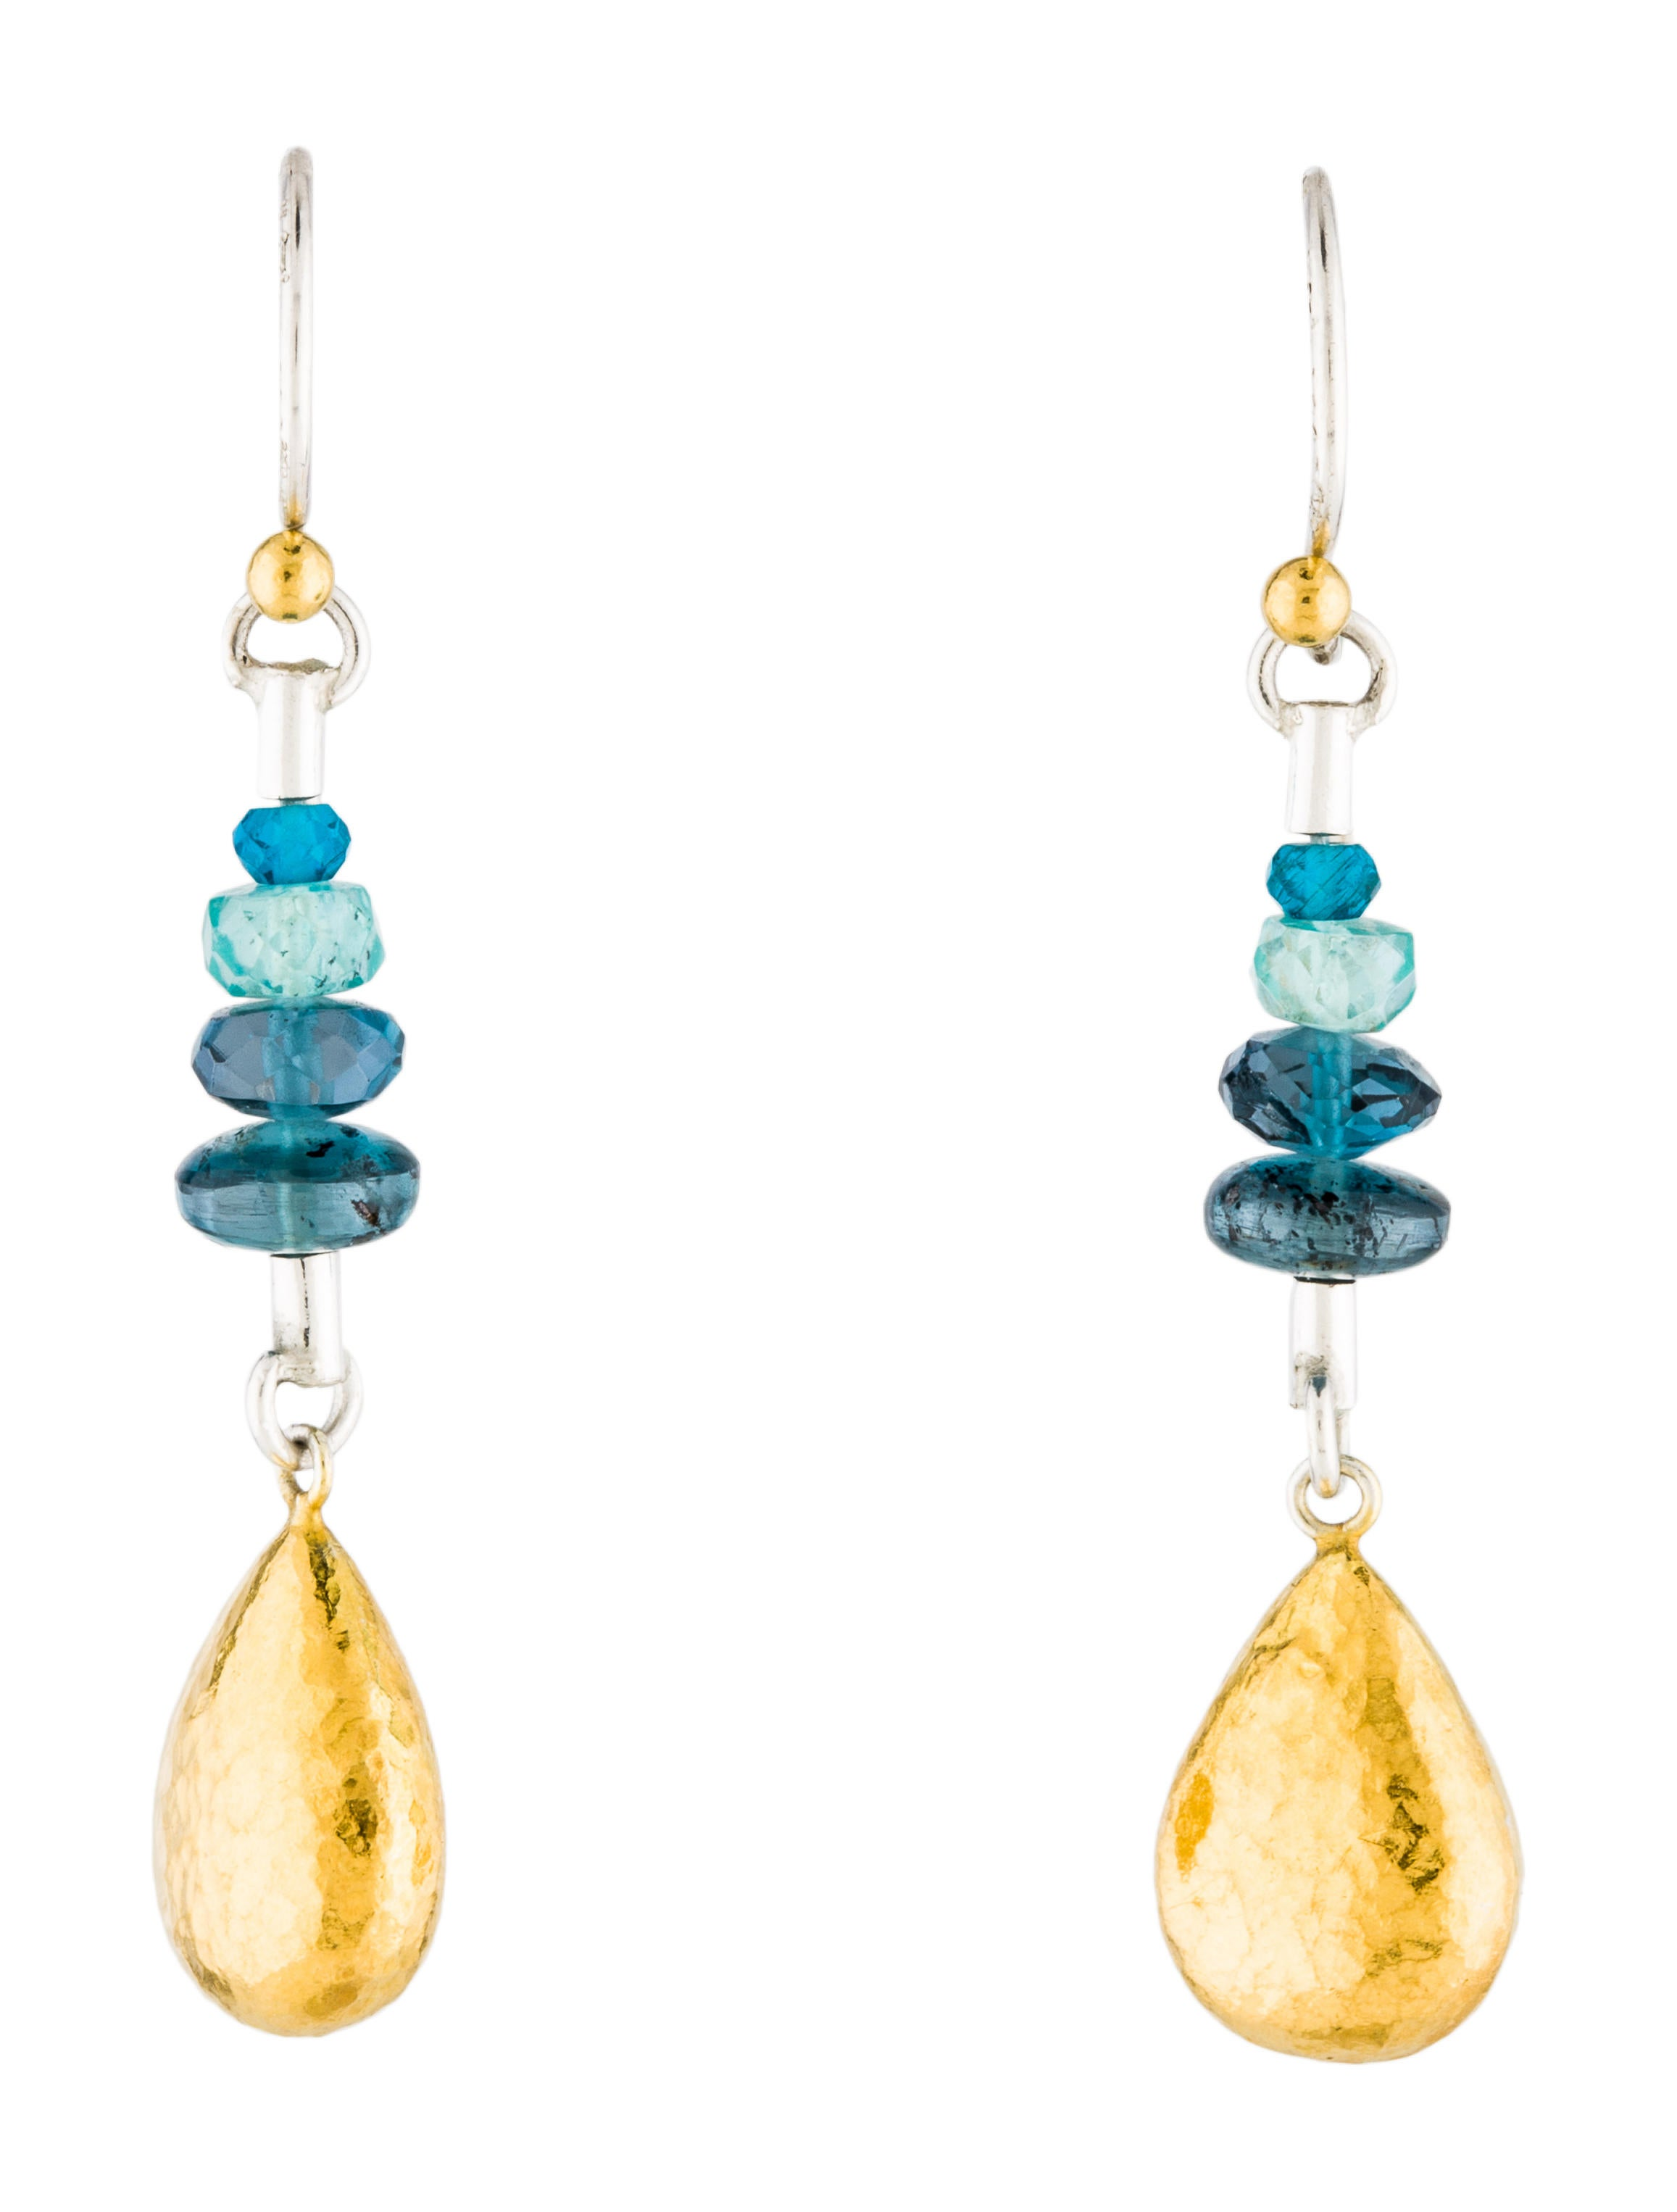 earring cz scott white products apatite kendra juniper earrings mary mak a in brass aqua